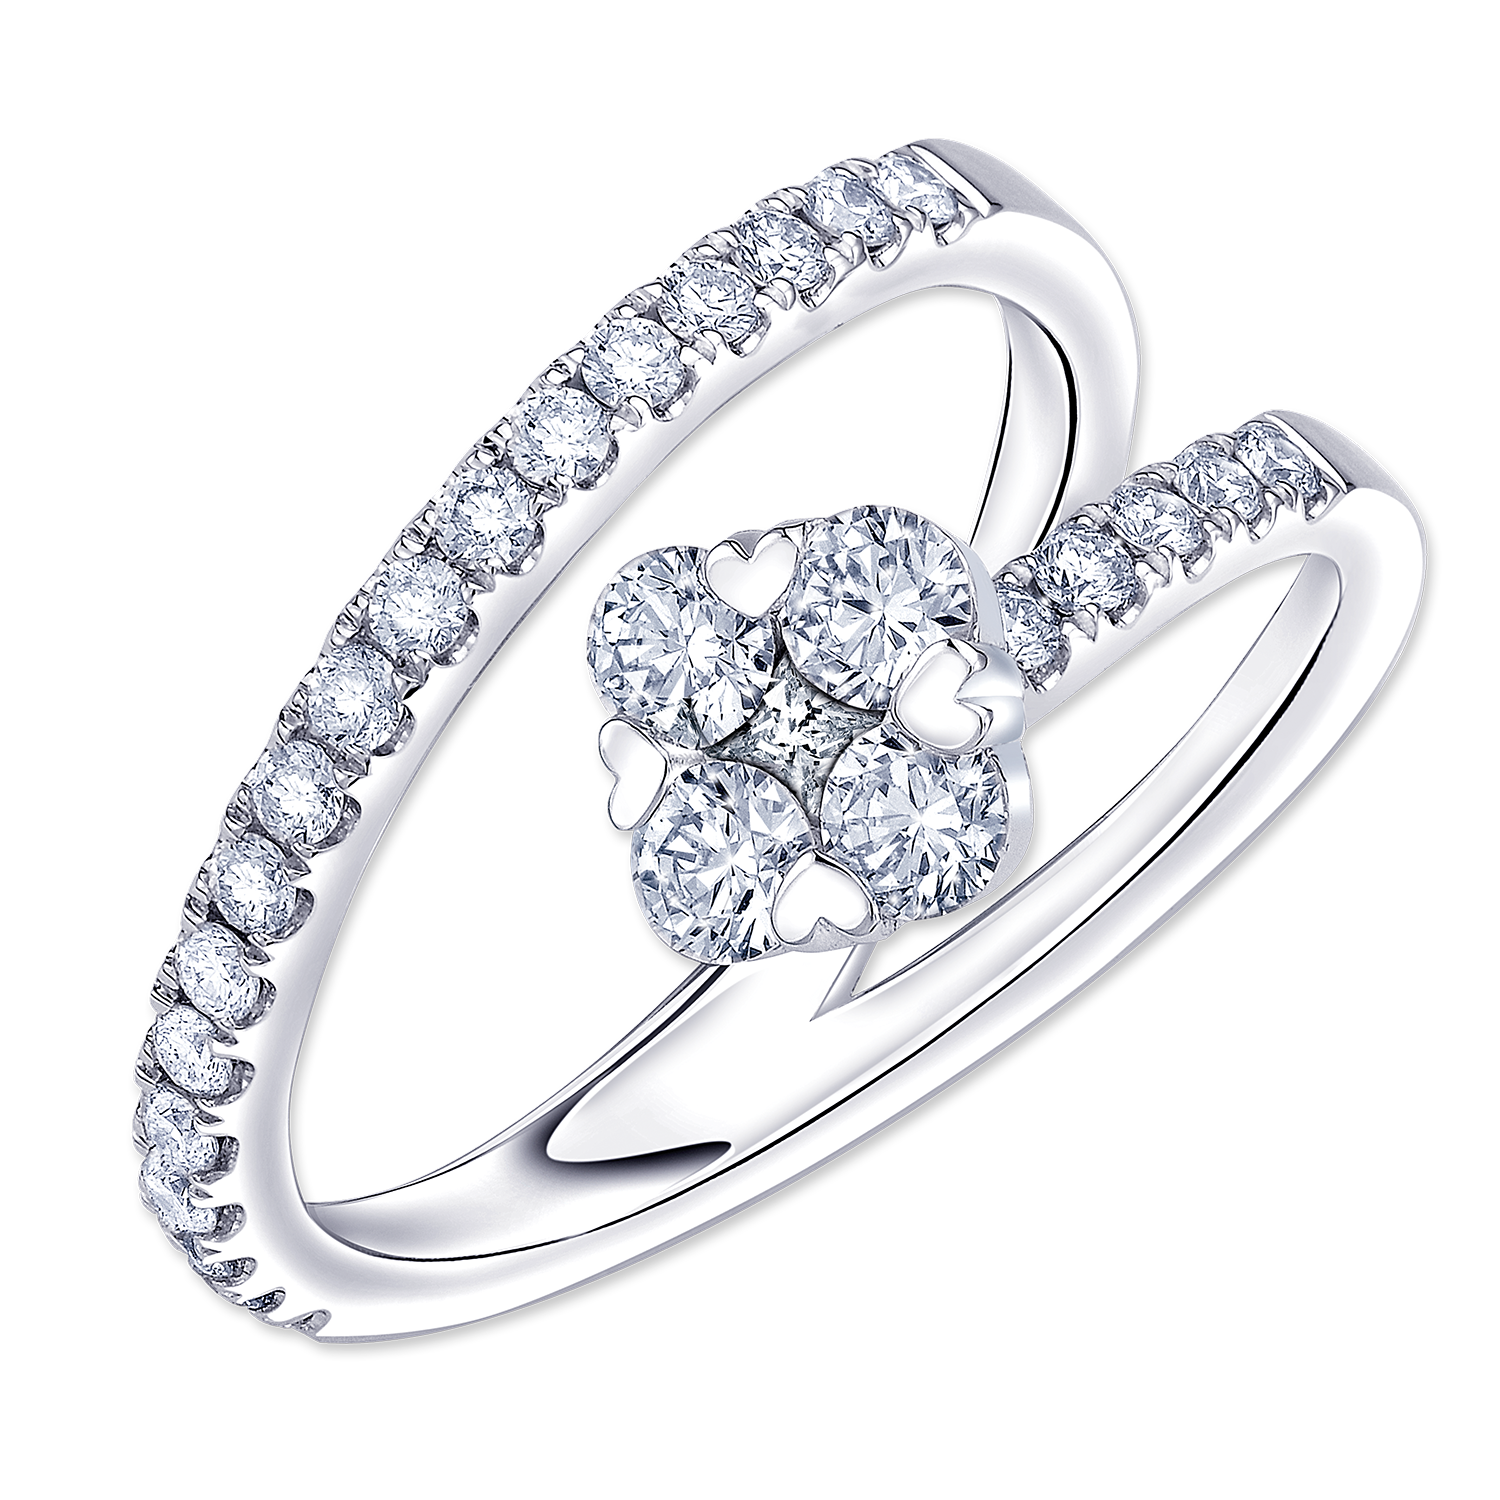 leo donocik ring luxury engagement beautiful princess of collection stellar tomasz rings diamond the earrings